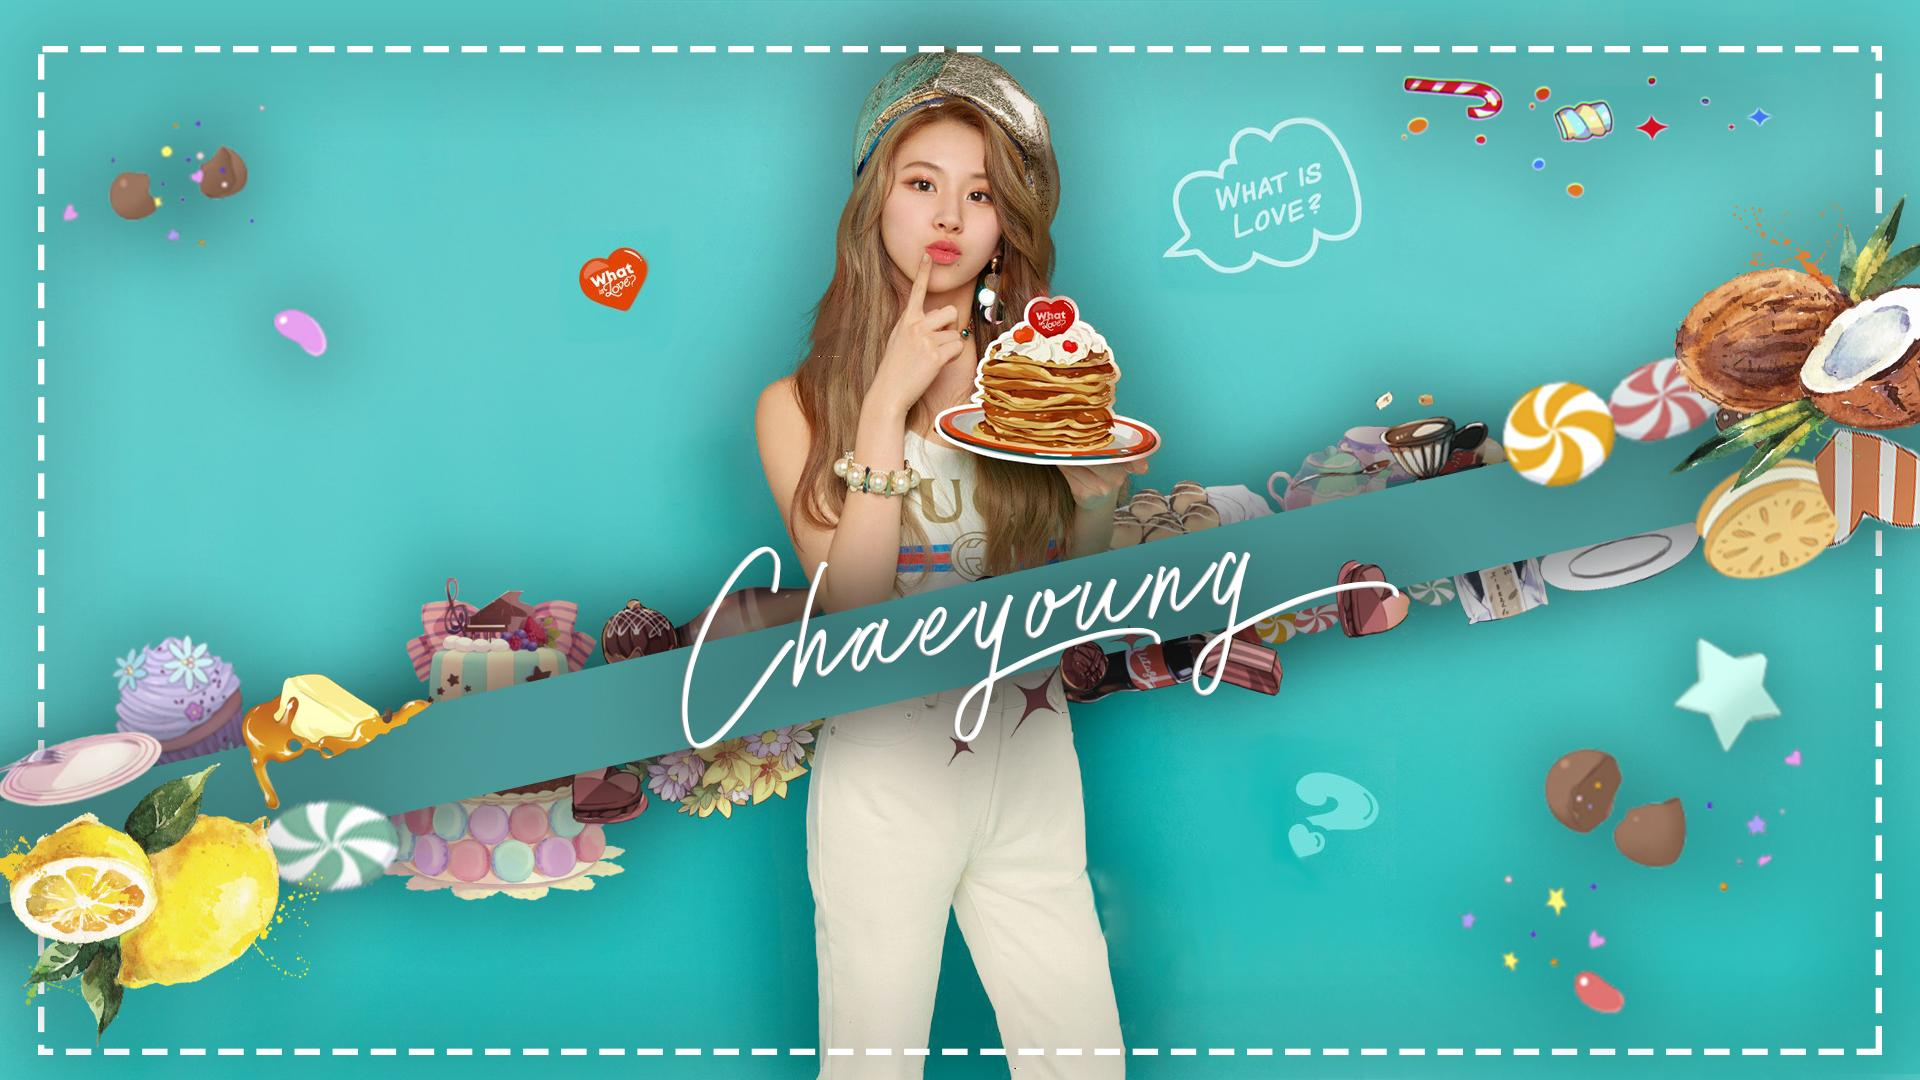 Chaeyoung Wallpaper What is Love Theme twice 1920x1080